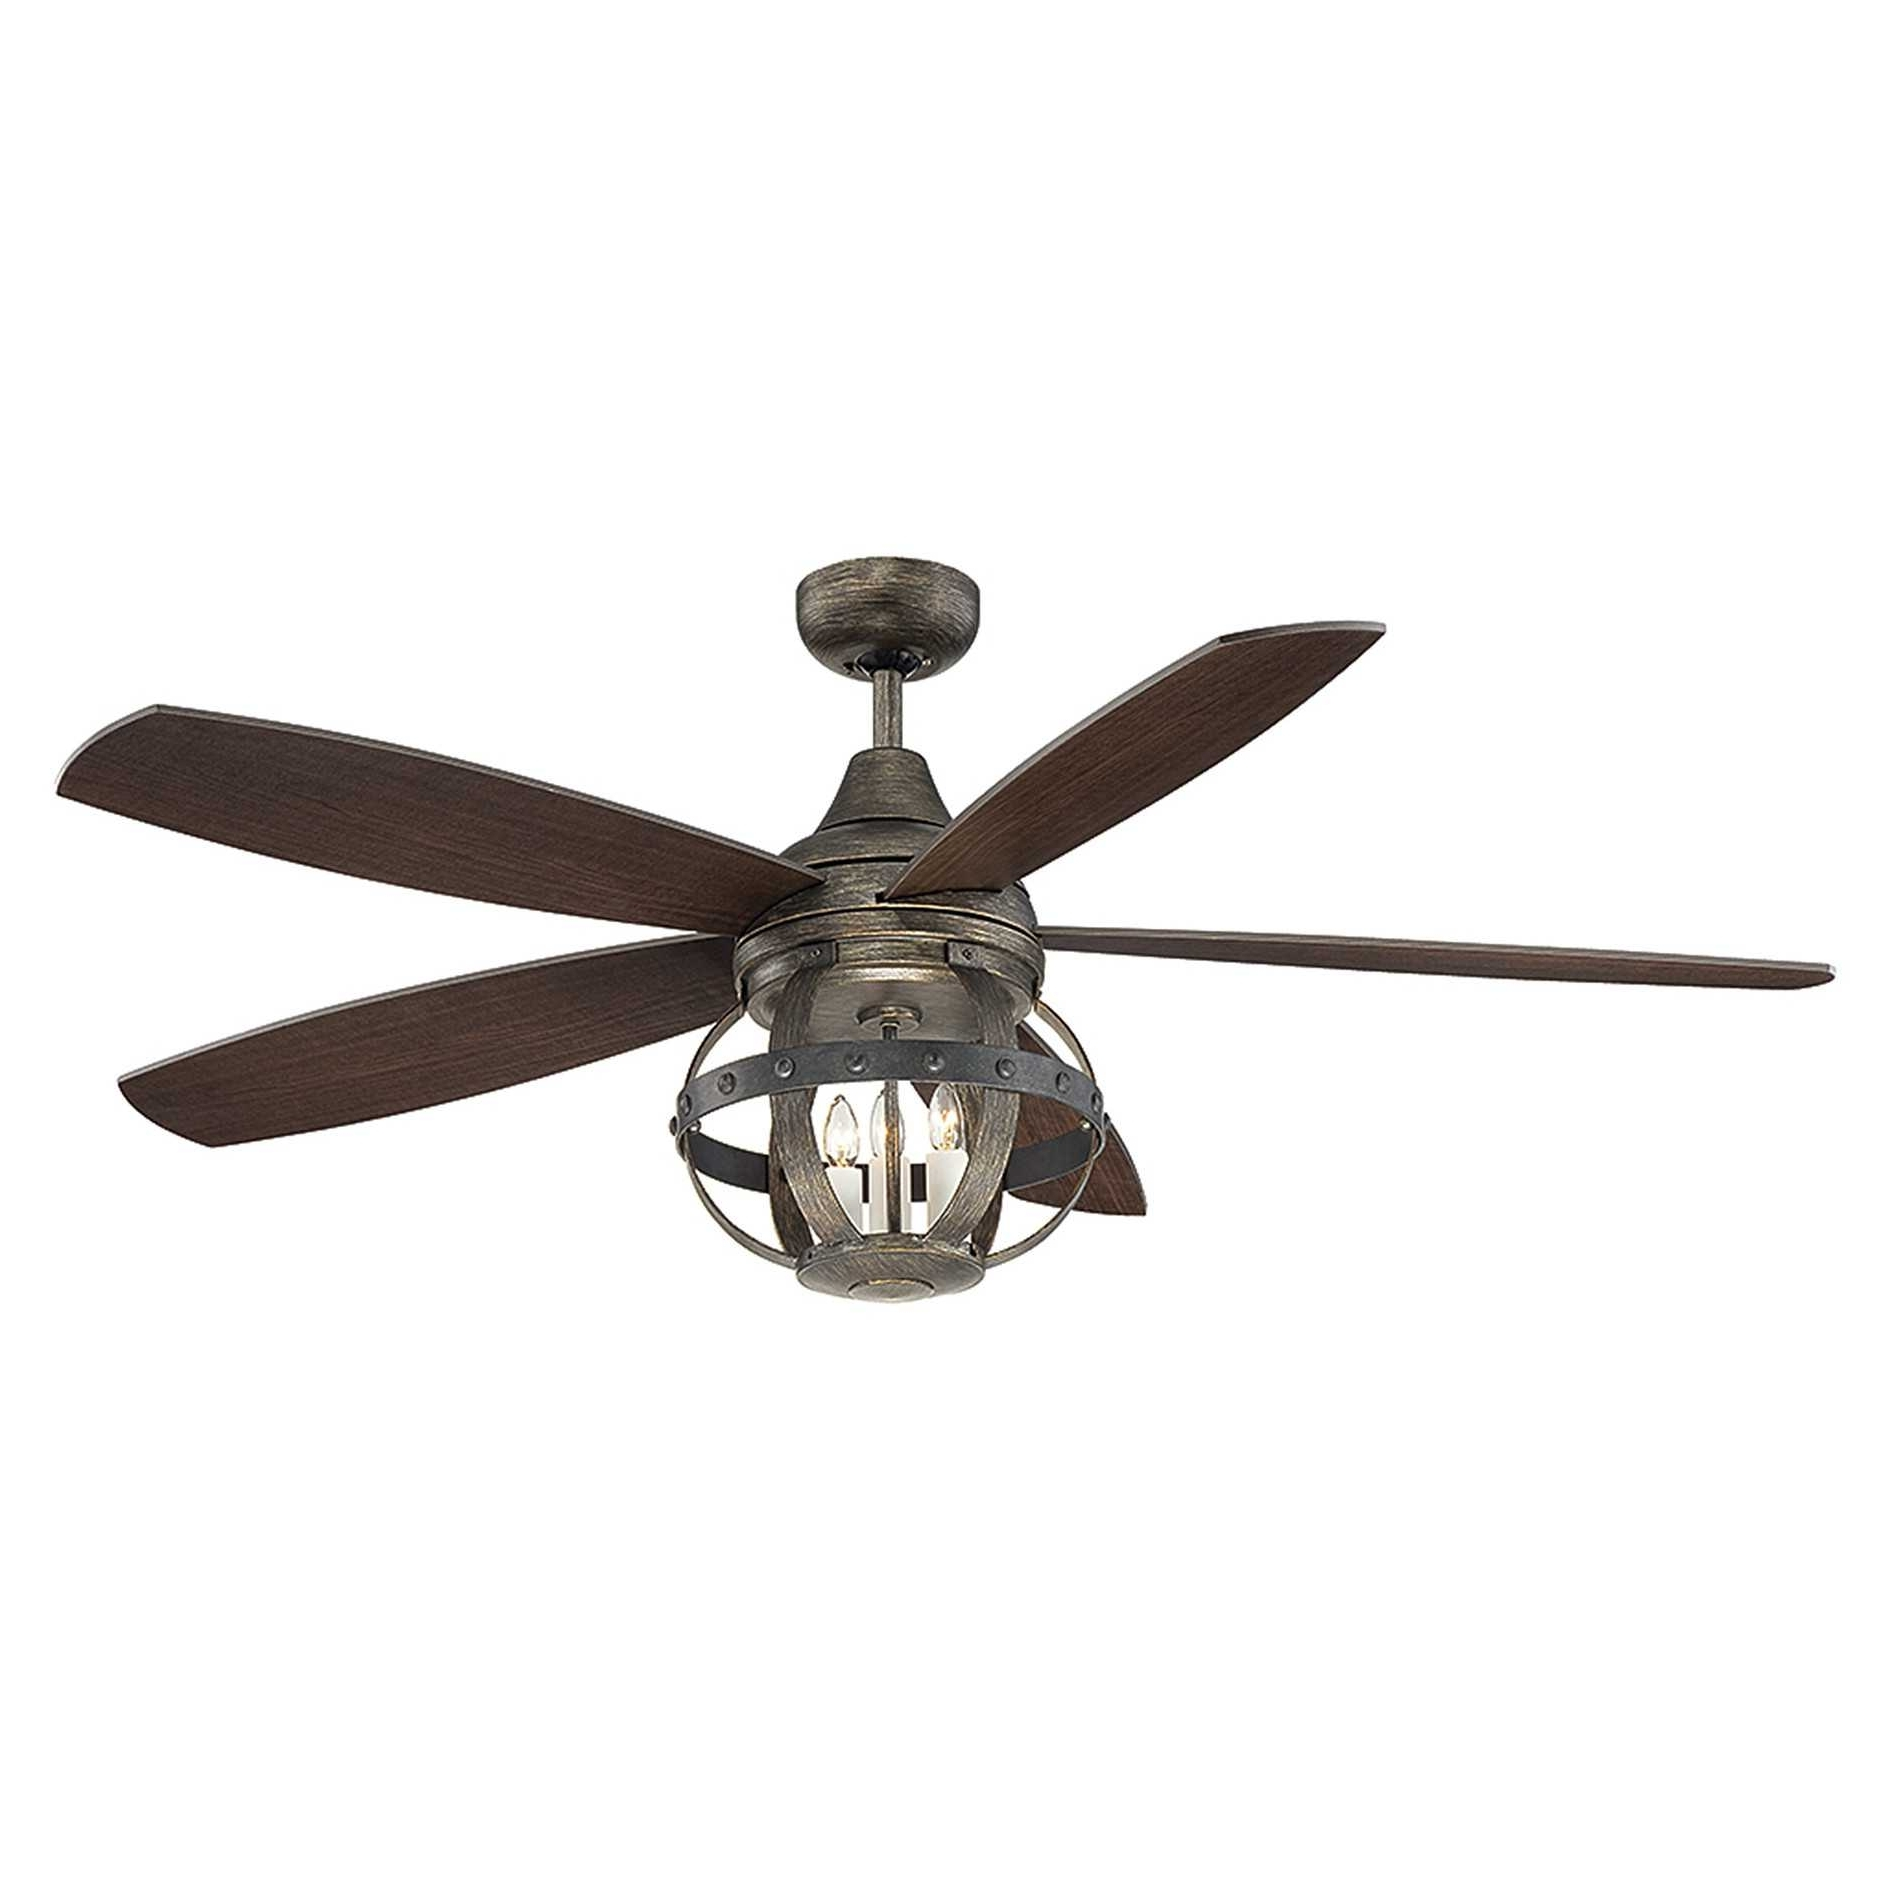 Incredible White Outdoor Ceiling Fans With Light Collection Also With Regard To Newest Brown Outdoor Ceiling Fan With Light (View 16 of 20)